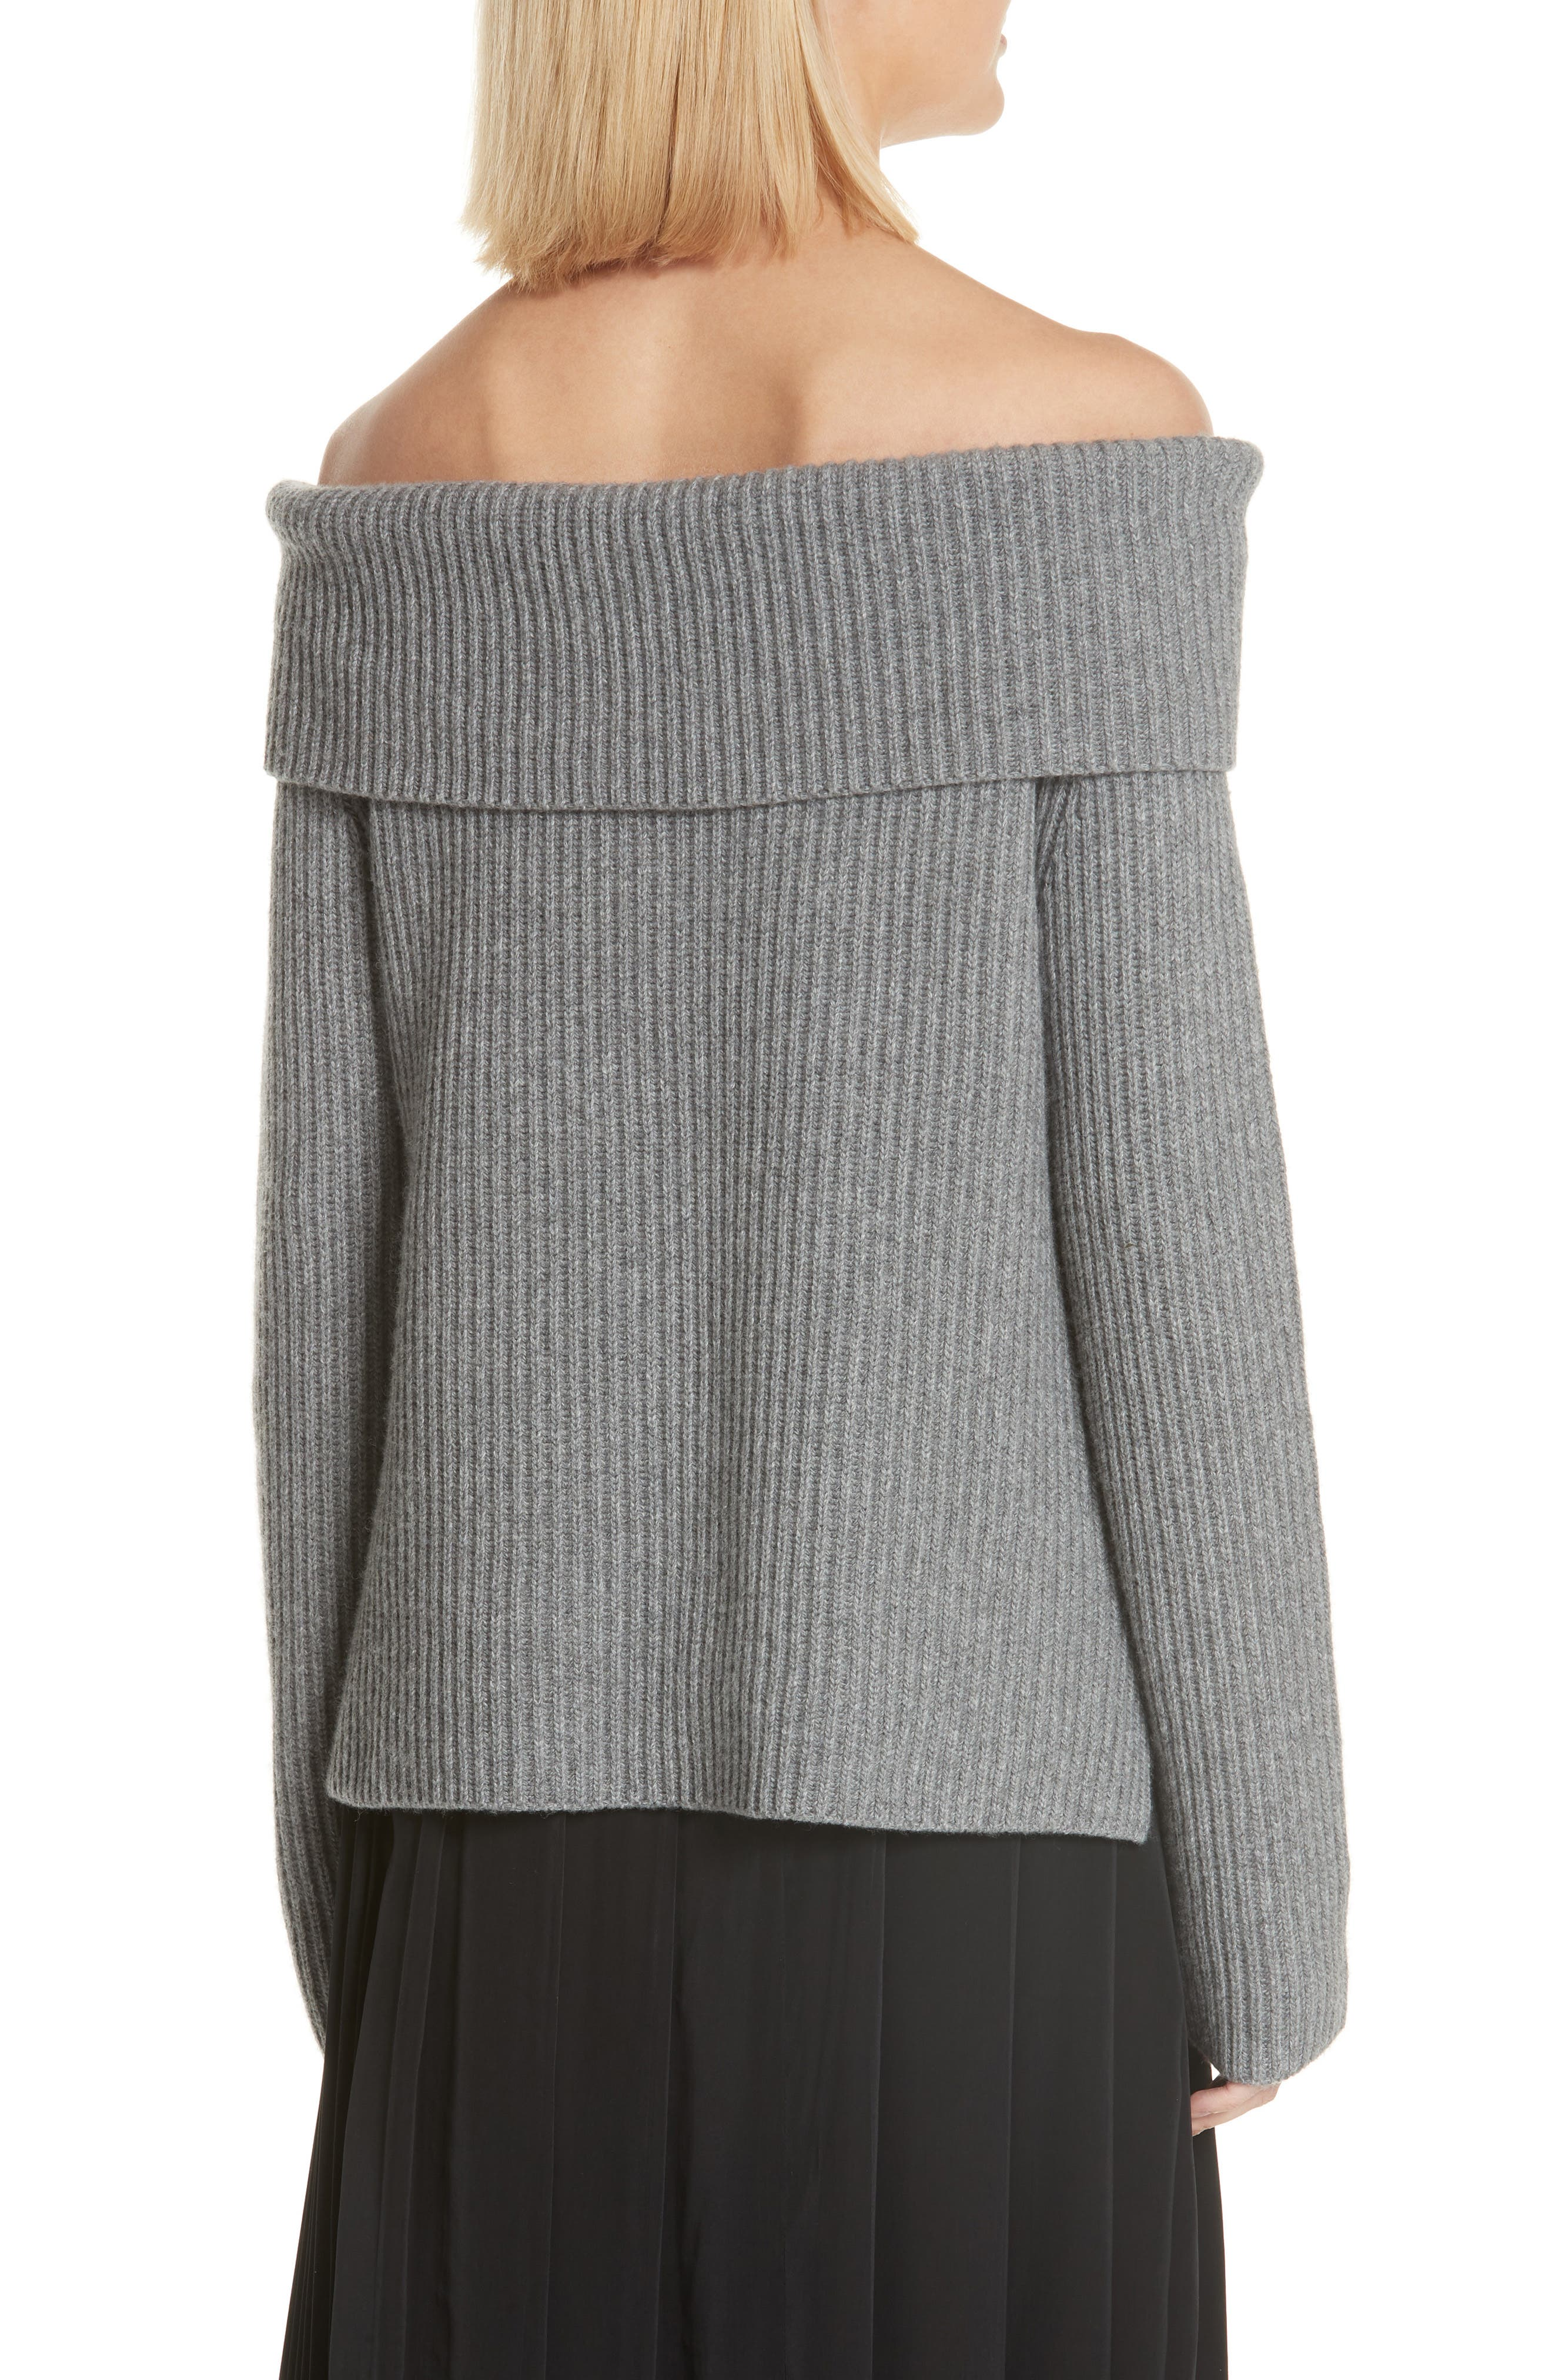 ROBERT RODRIGUEZ,                             Off the Shoulder Sweater,                             Alternate thumbnail 2, color,                             020